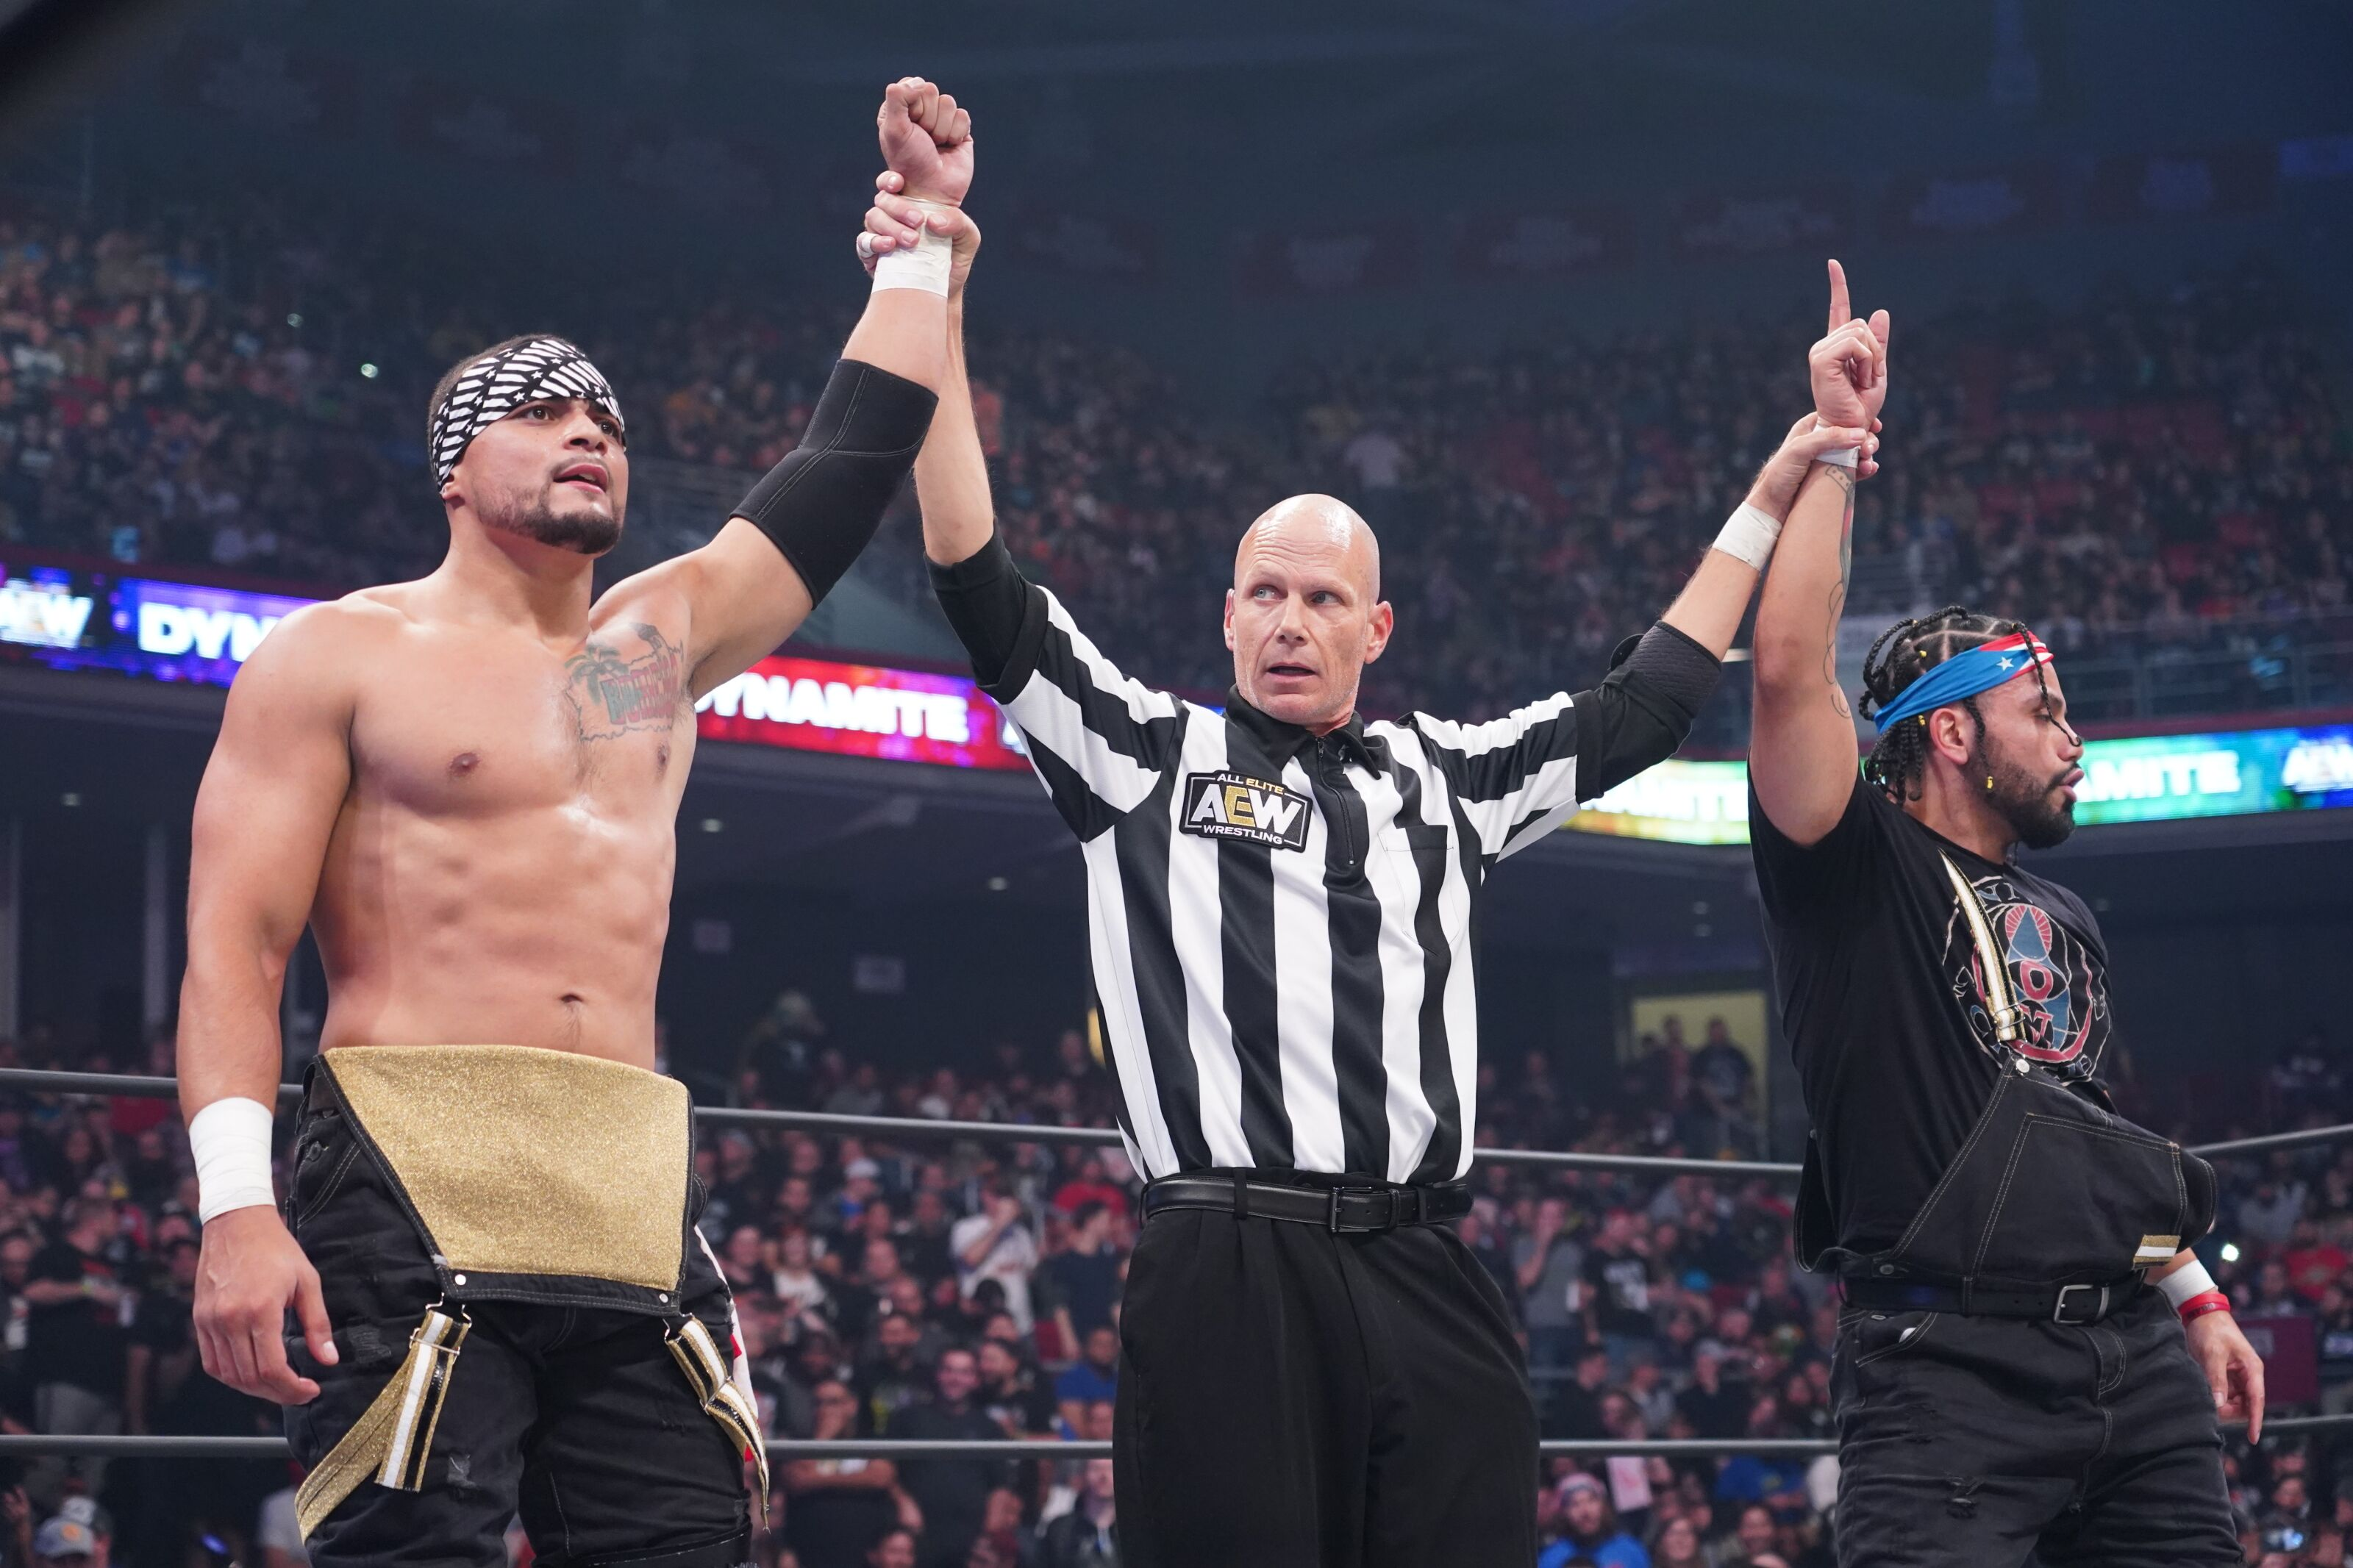 AEW tag team explain why they turned down WWE